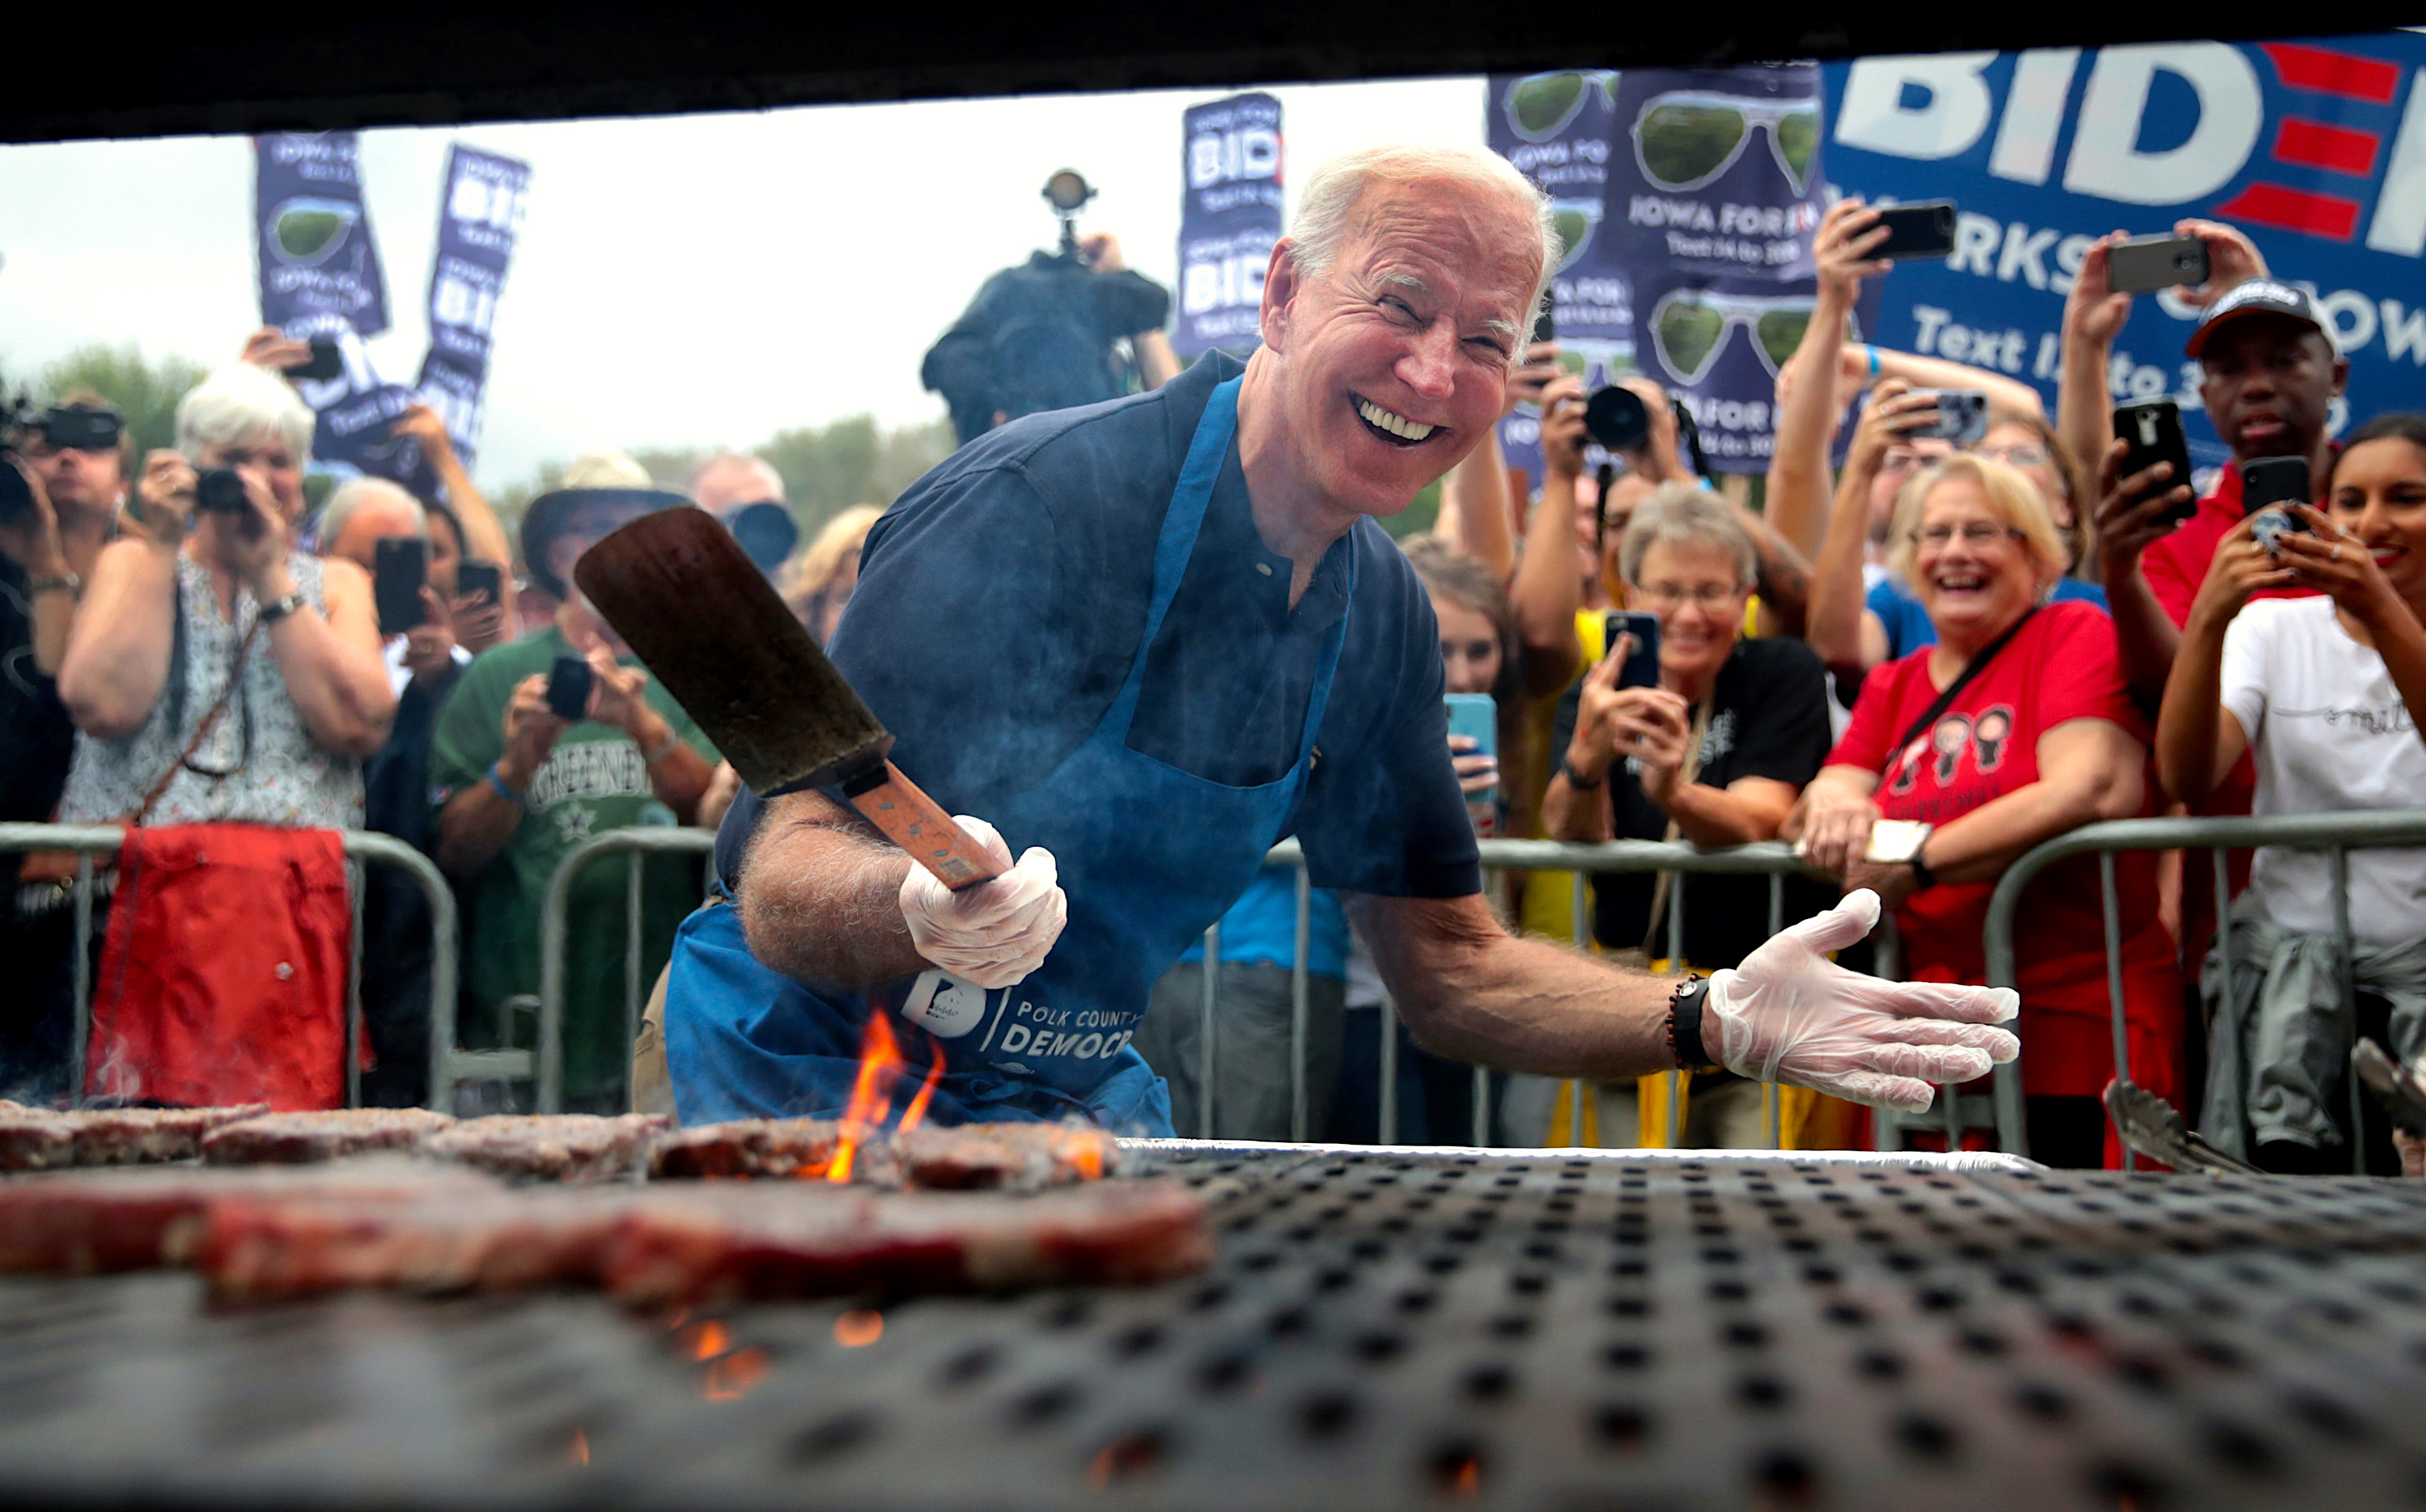 Joe Biden grills burgers on a grill at a campaign event.